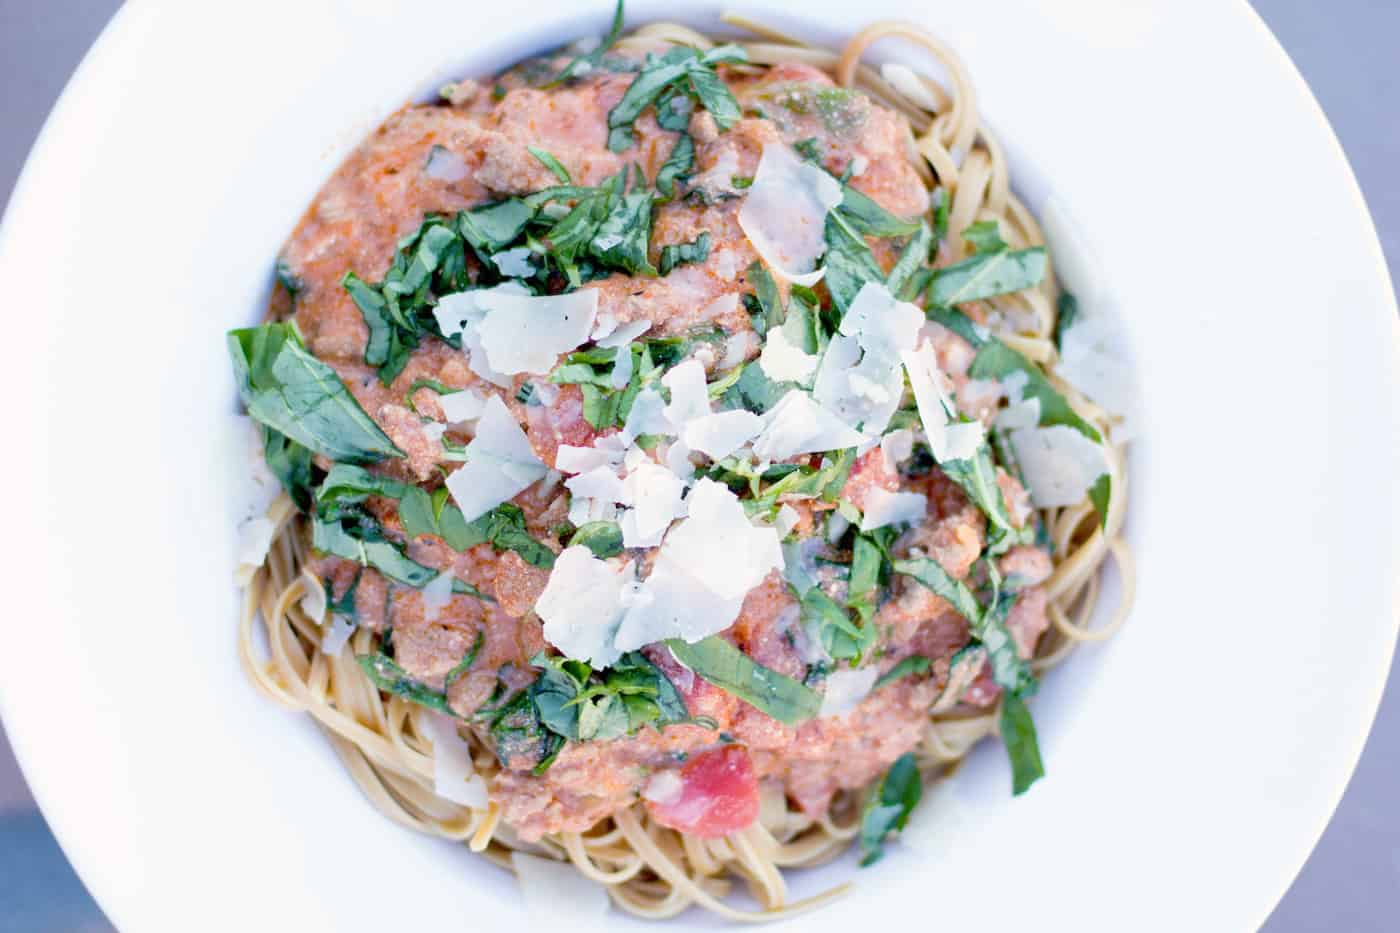 If you are looking for a delicious and fresh meal that the whole family will love, try this sausage and spinach pasta recipe! It's so easy to put together.